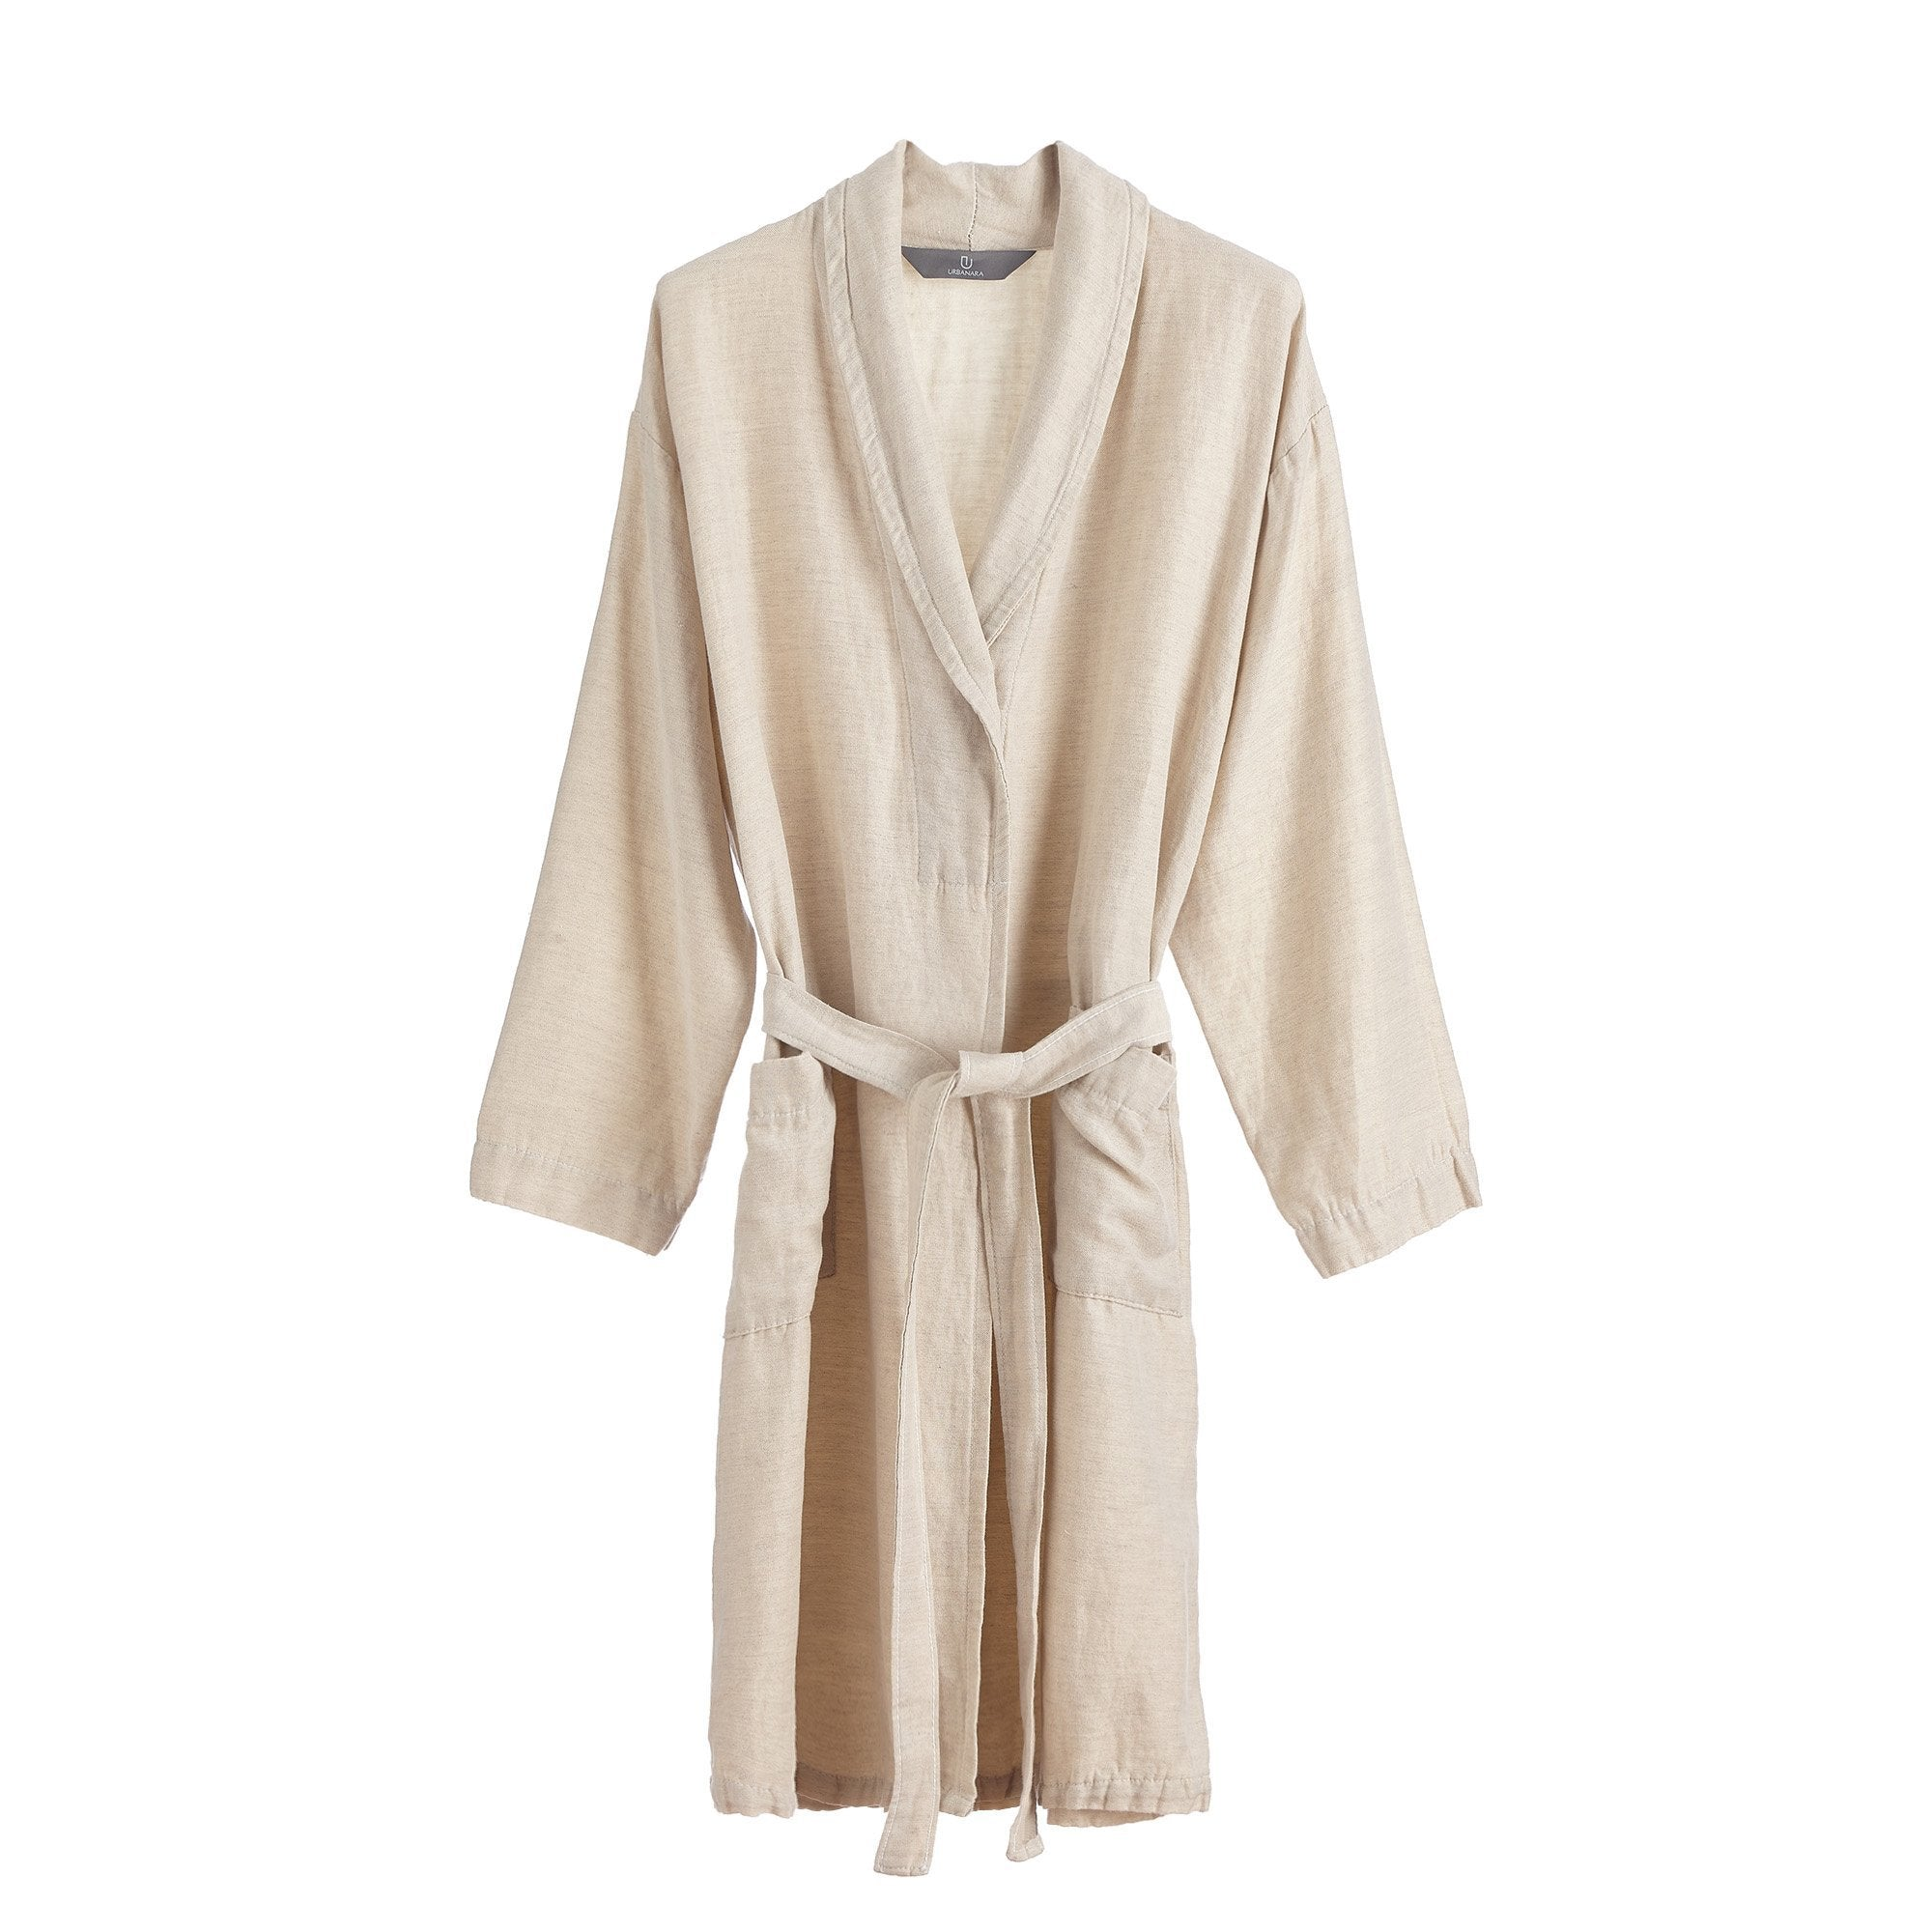 Antero Bathrobe natural, 55% cotton & 45% linen